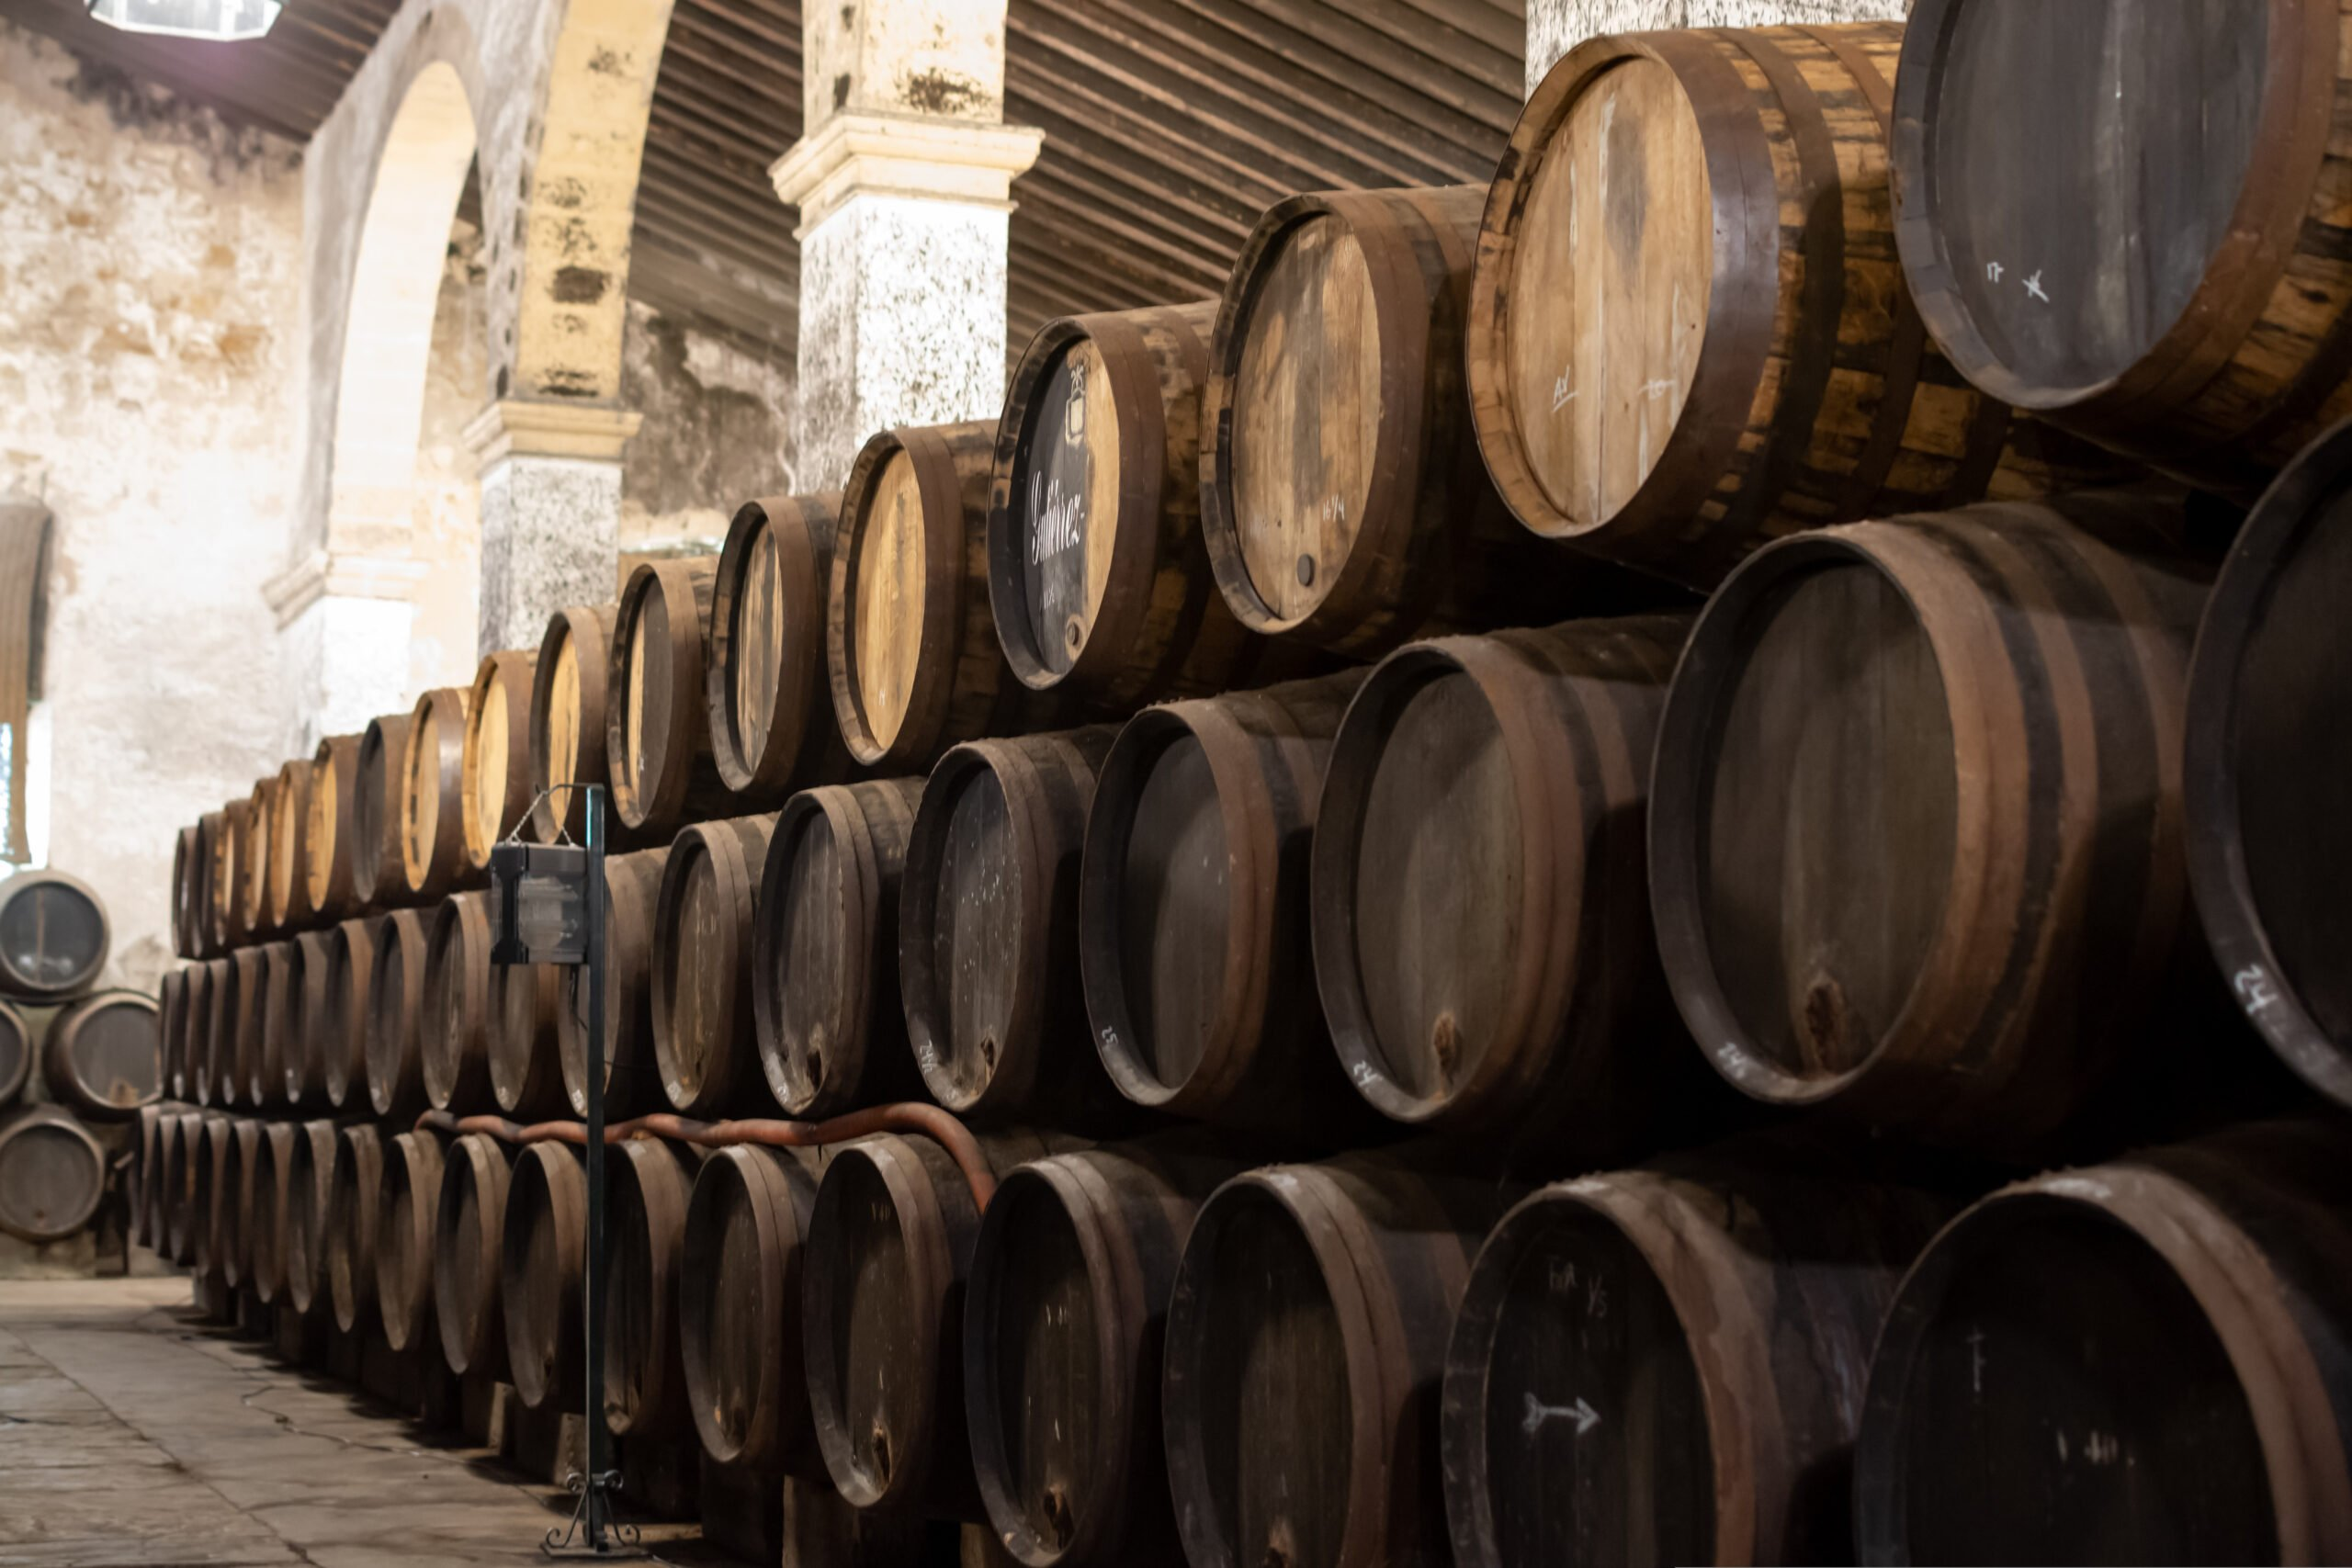 Visit A Sherry Cellar And Learn About The Production On The Cadiz & Jerez Sherry Tasting Tour From Seville